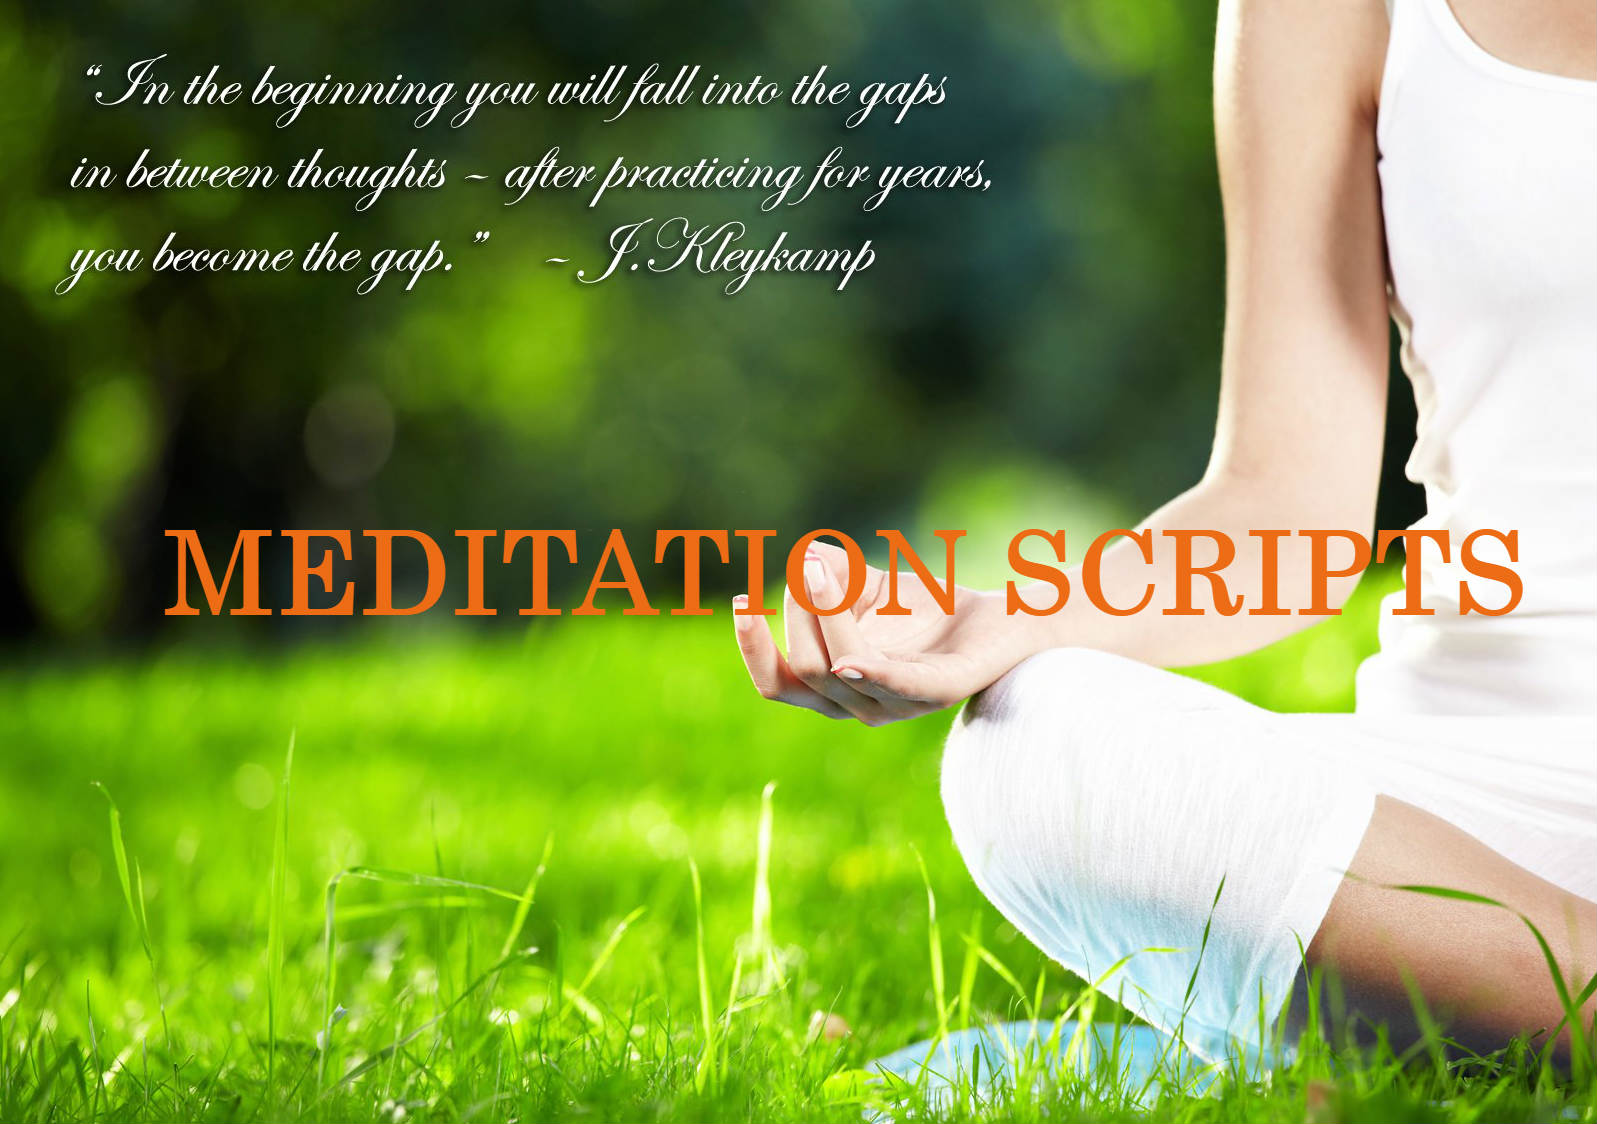 MEDITATION SCRIPTS (All You Need to Know and How to Write a Good Script)